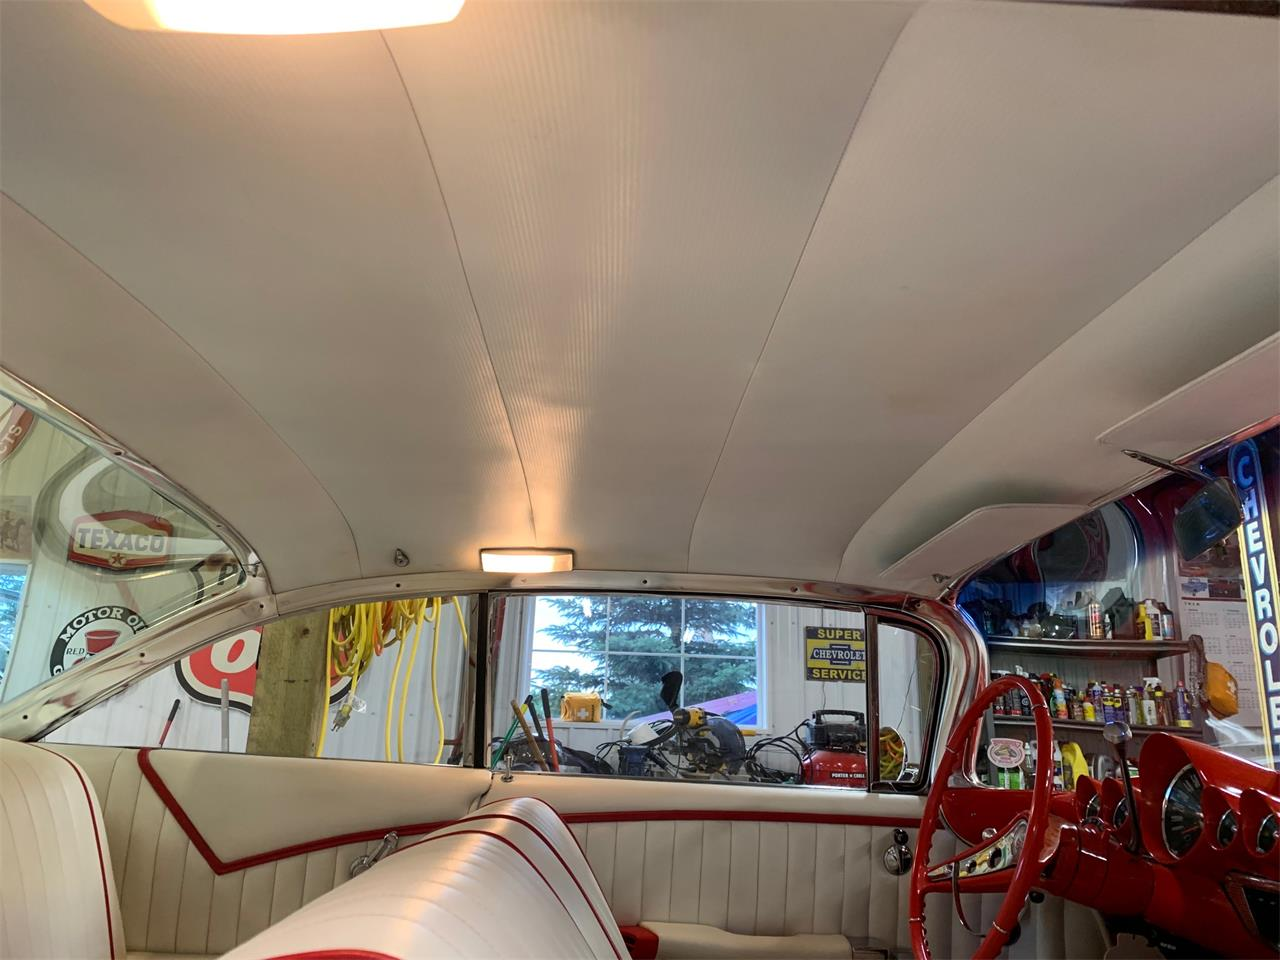 Large Picture of Classic 1960 Chevrolet Impala - $47,000.00 - QOLH